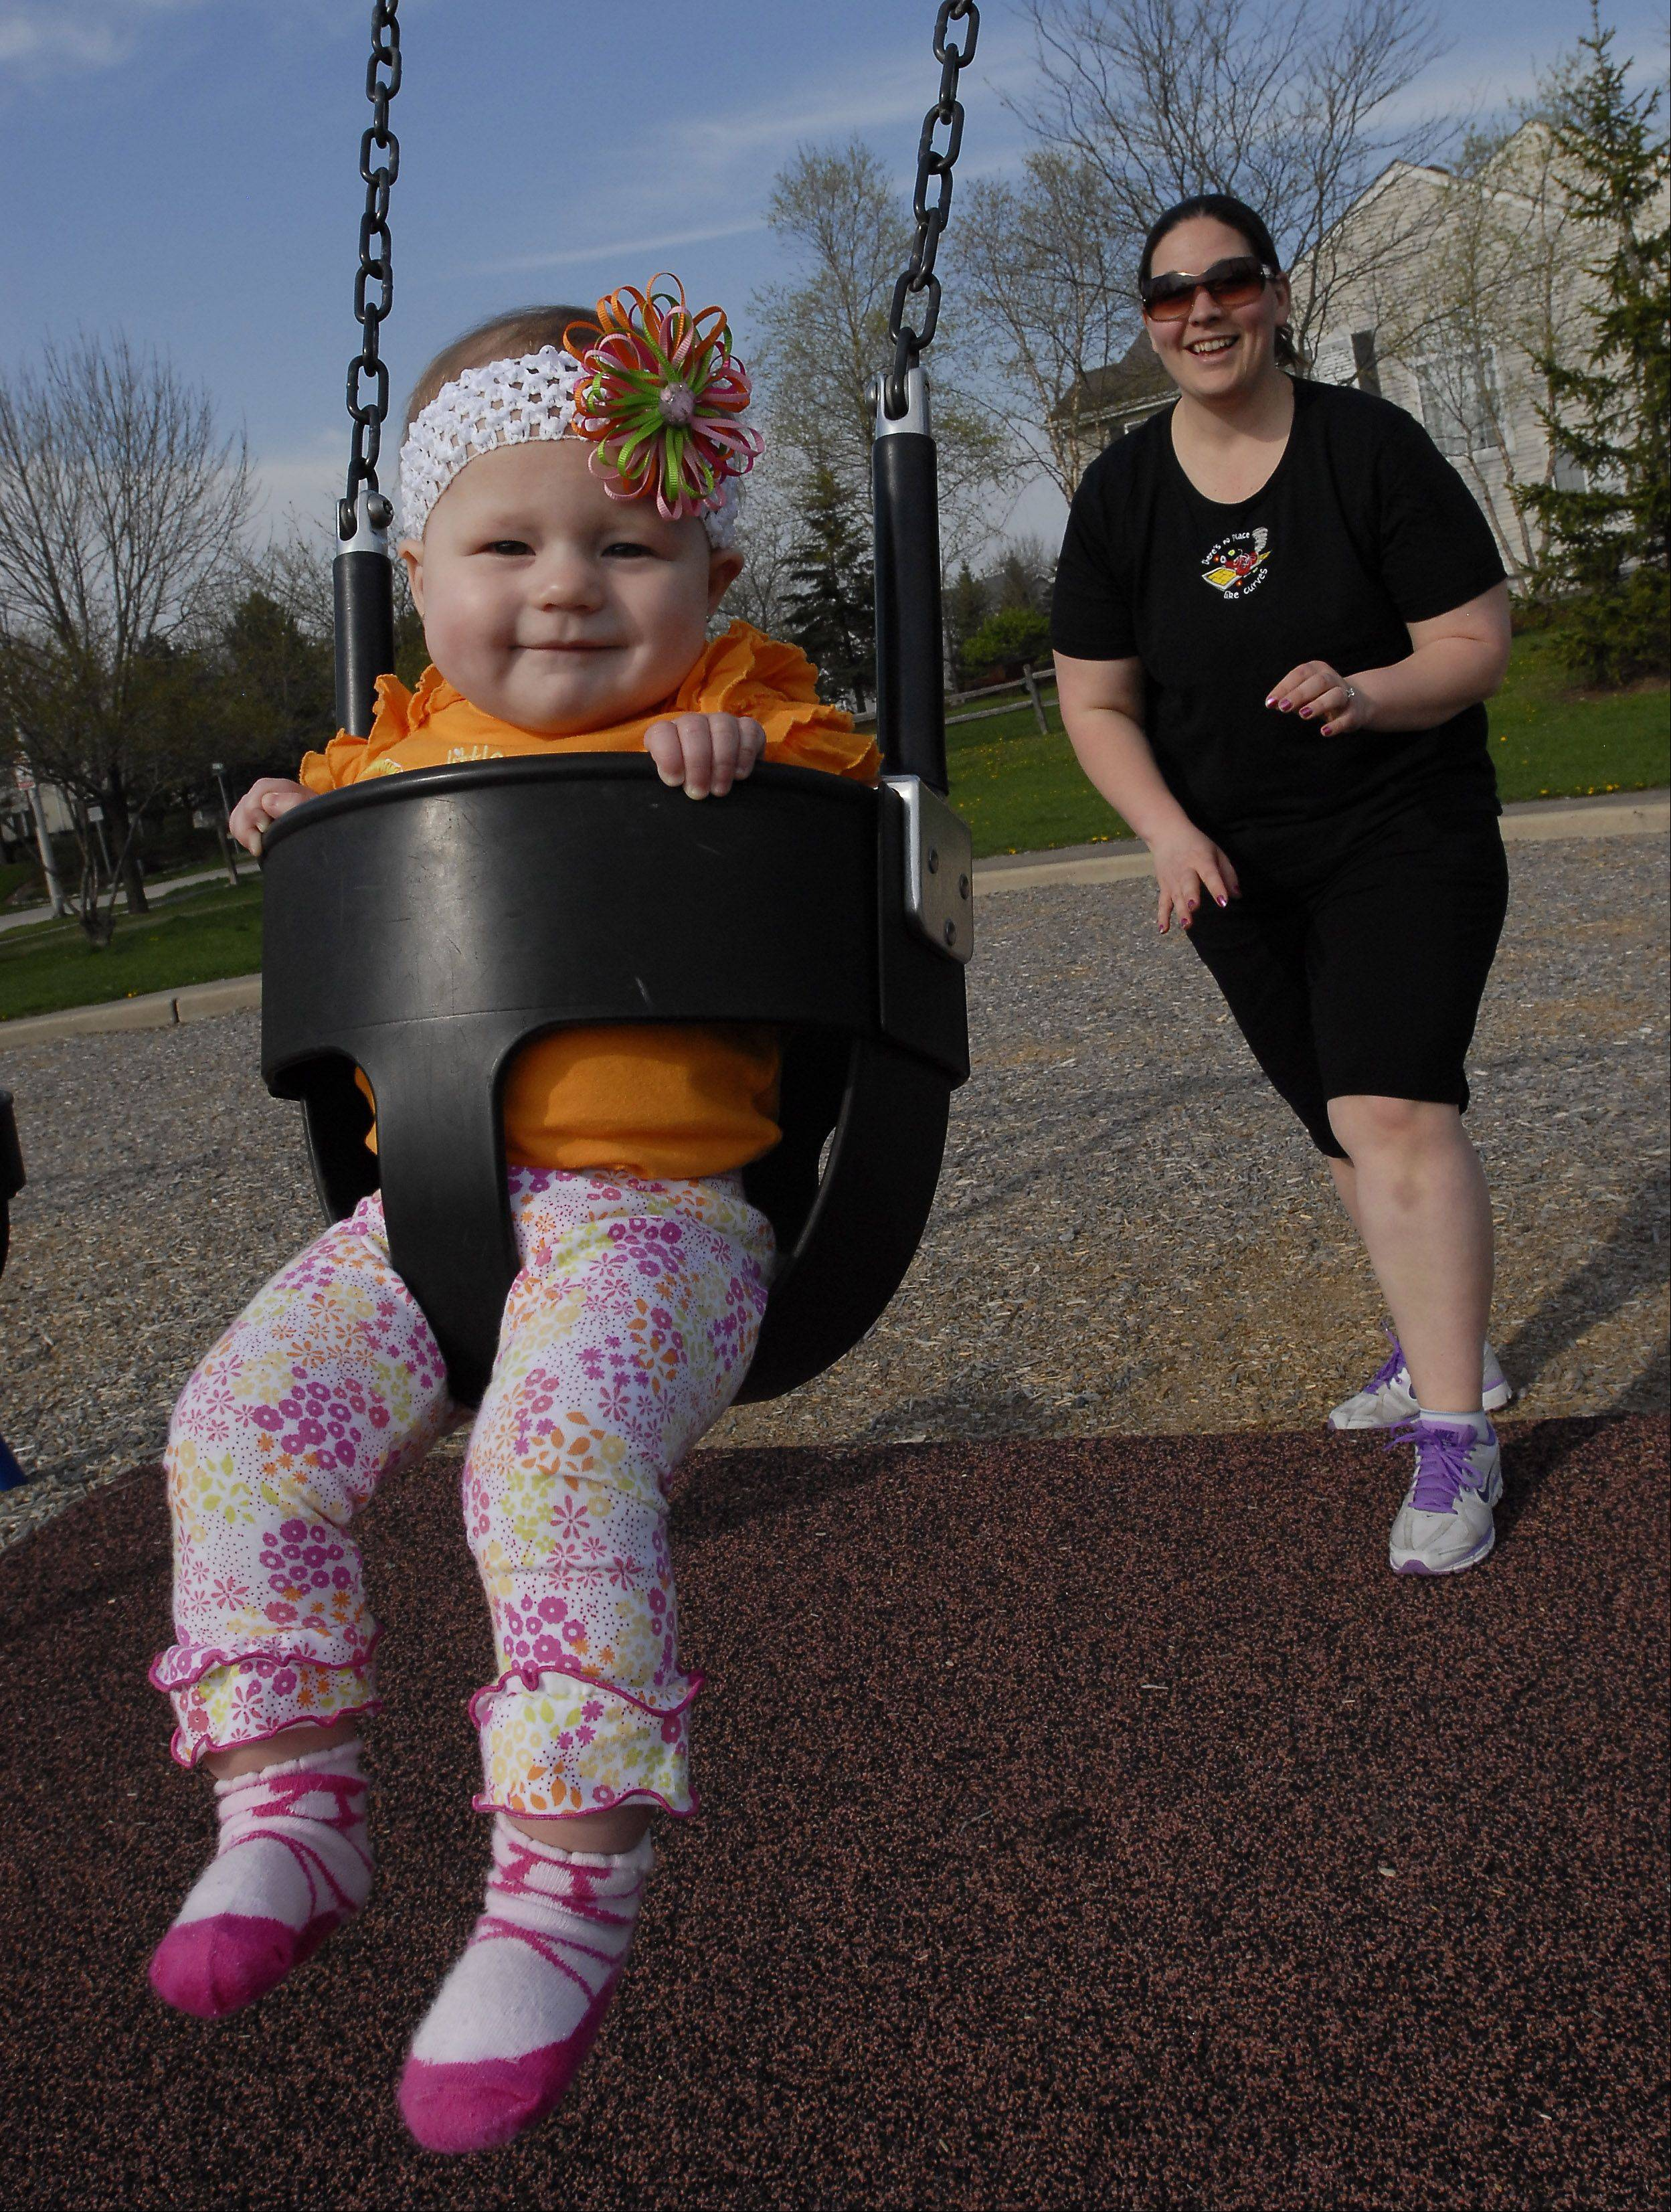 Katie Przyszlak gets some exercise pushing her daughter, Addison, on the swings at a park near their home in Schaumburg.